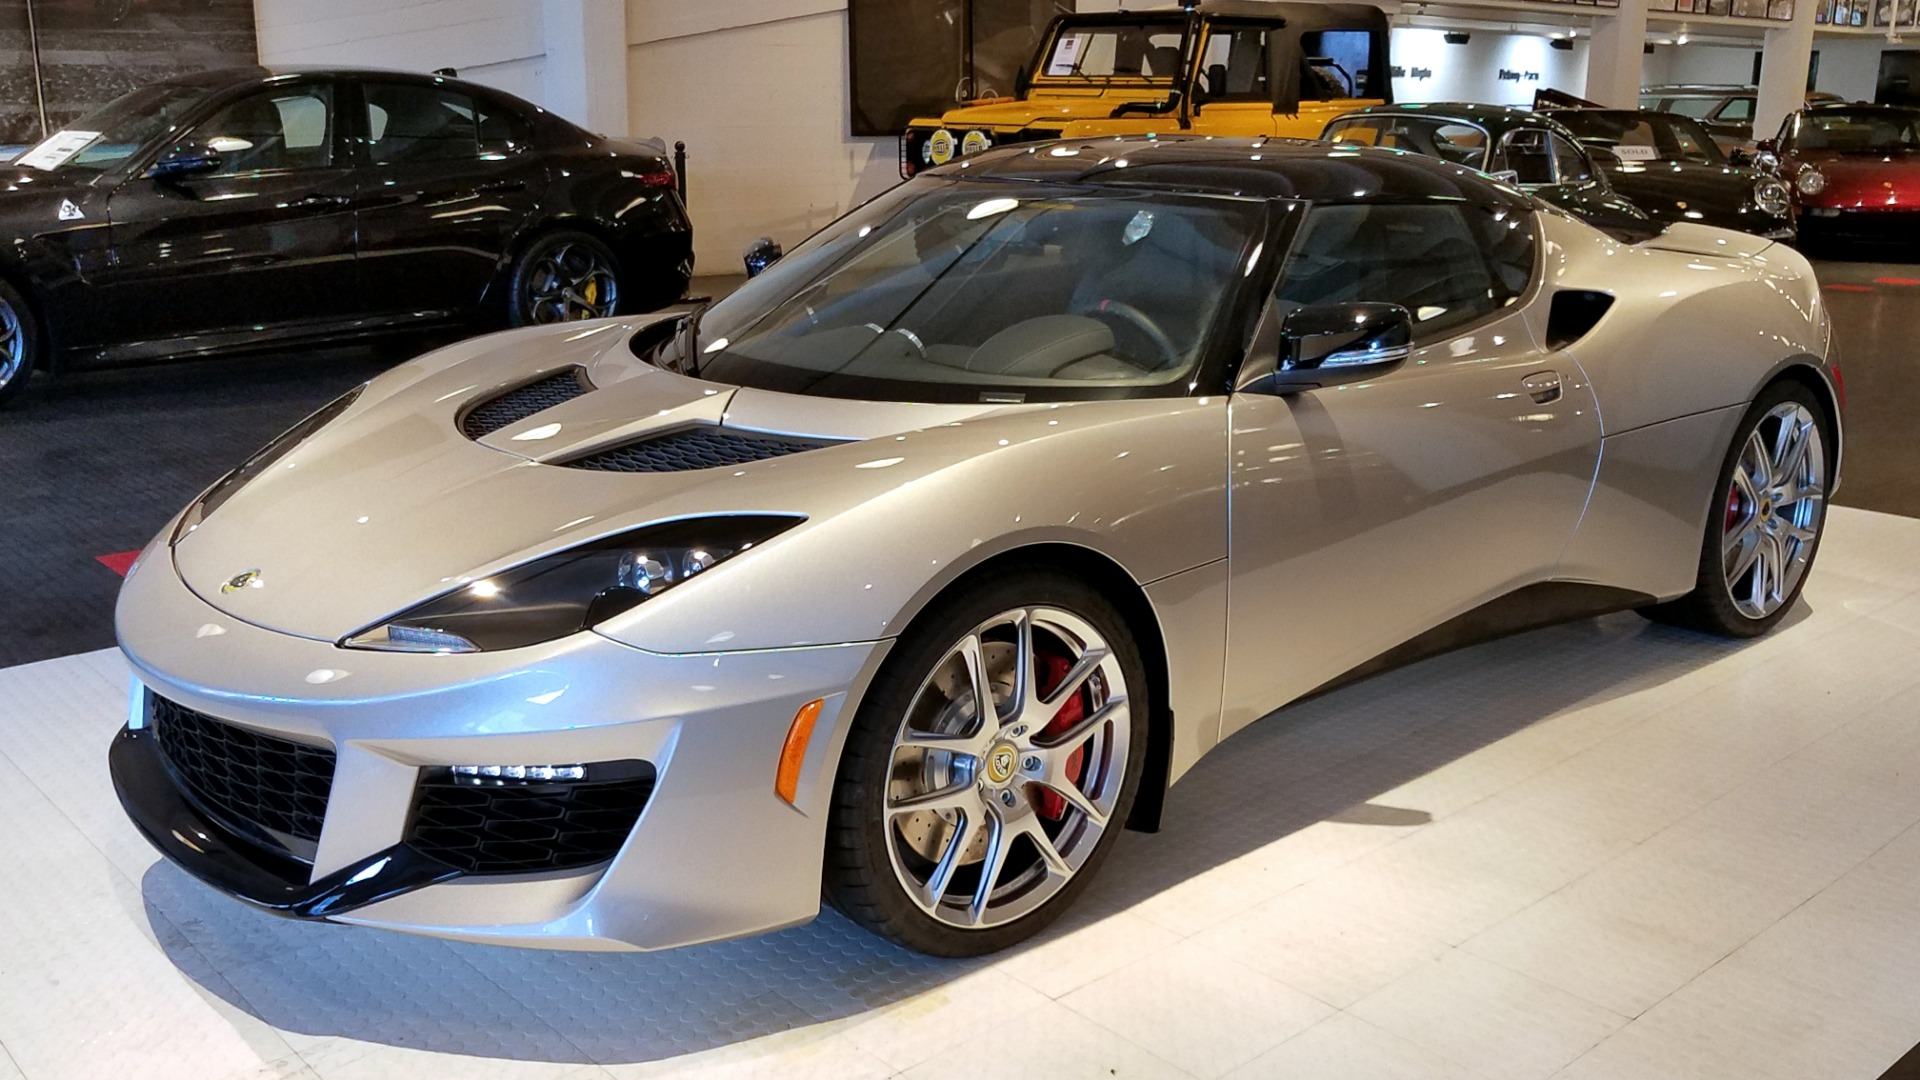 2017 lotus evora 400 stock l171005 for sale near san. Black Bedroom Furniture Sets. Home Design Ideas